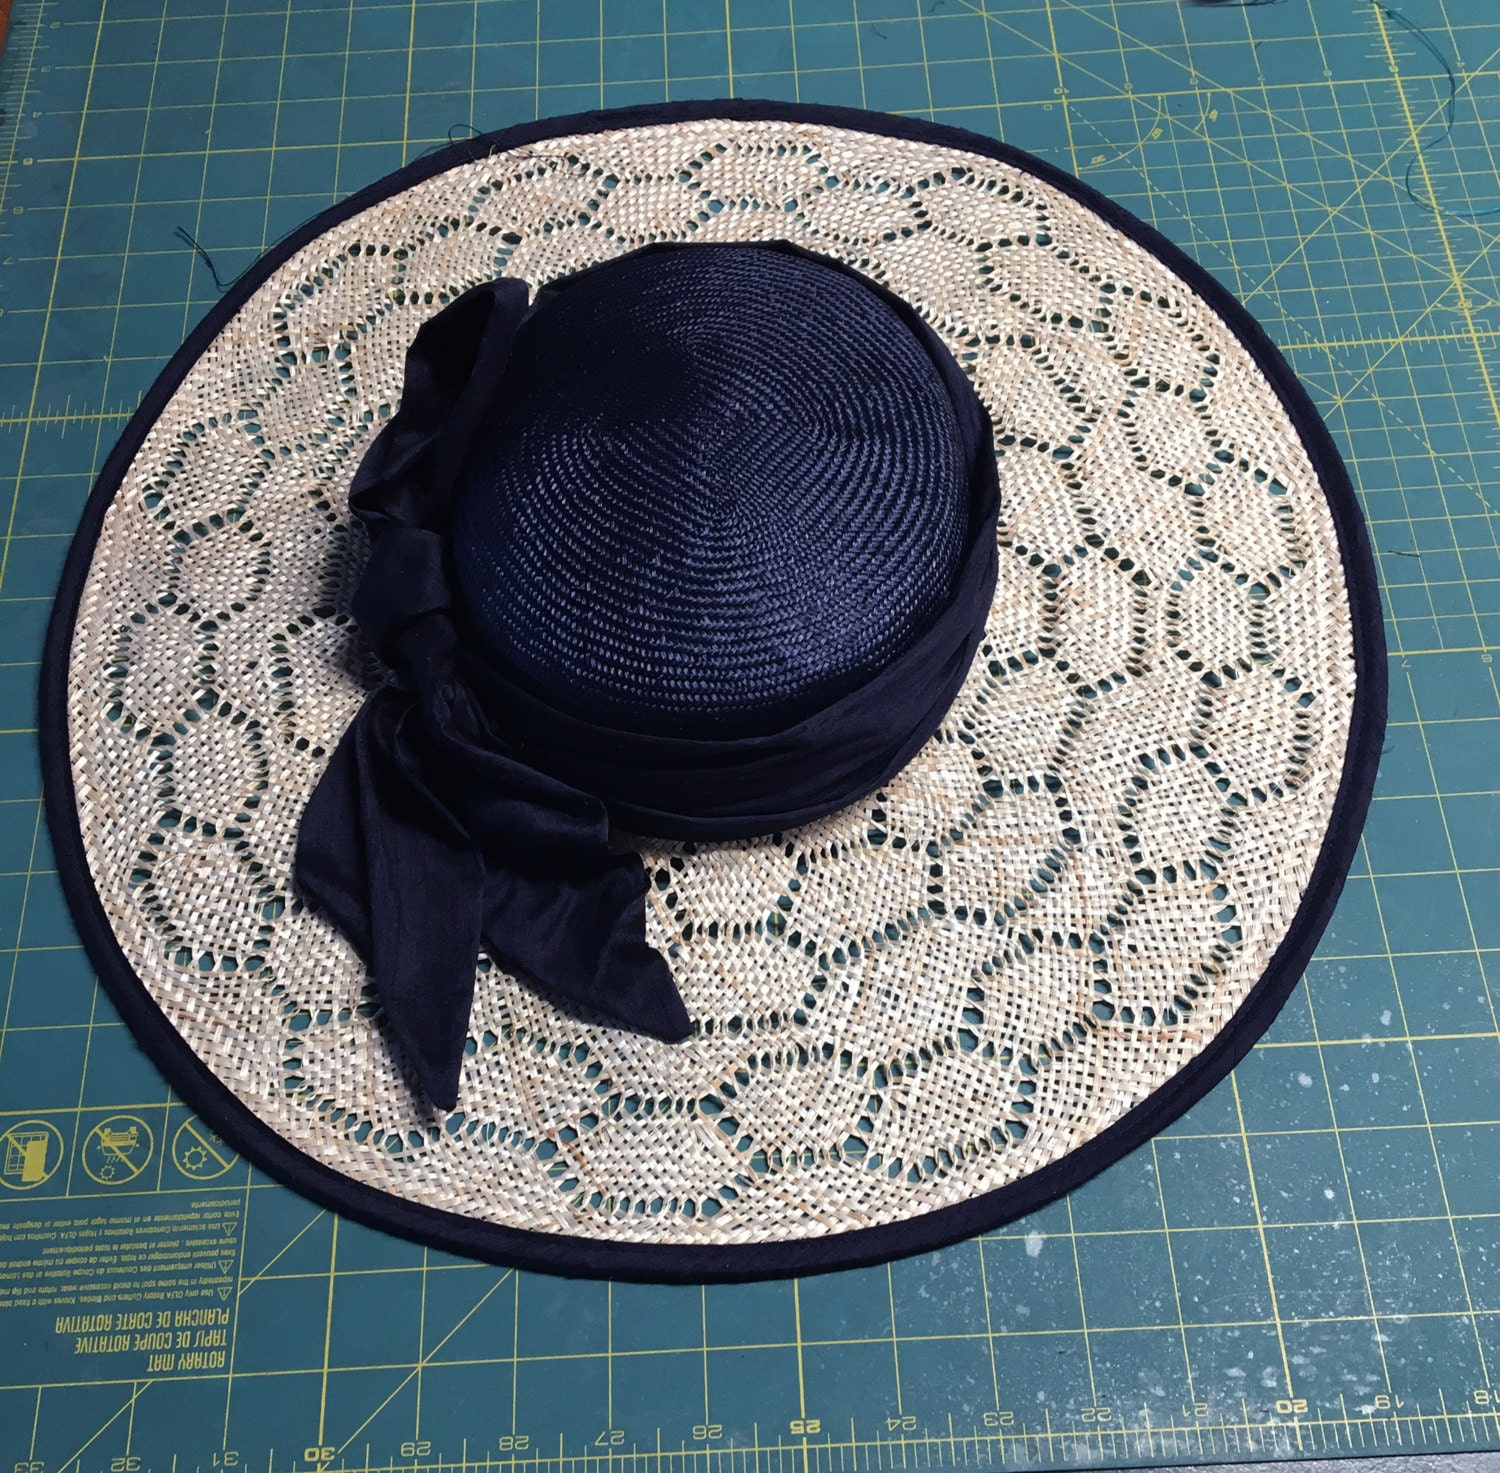 Maria Kentucky Derby Hat Beautiful Boater Style Straw Hat With